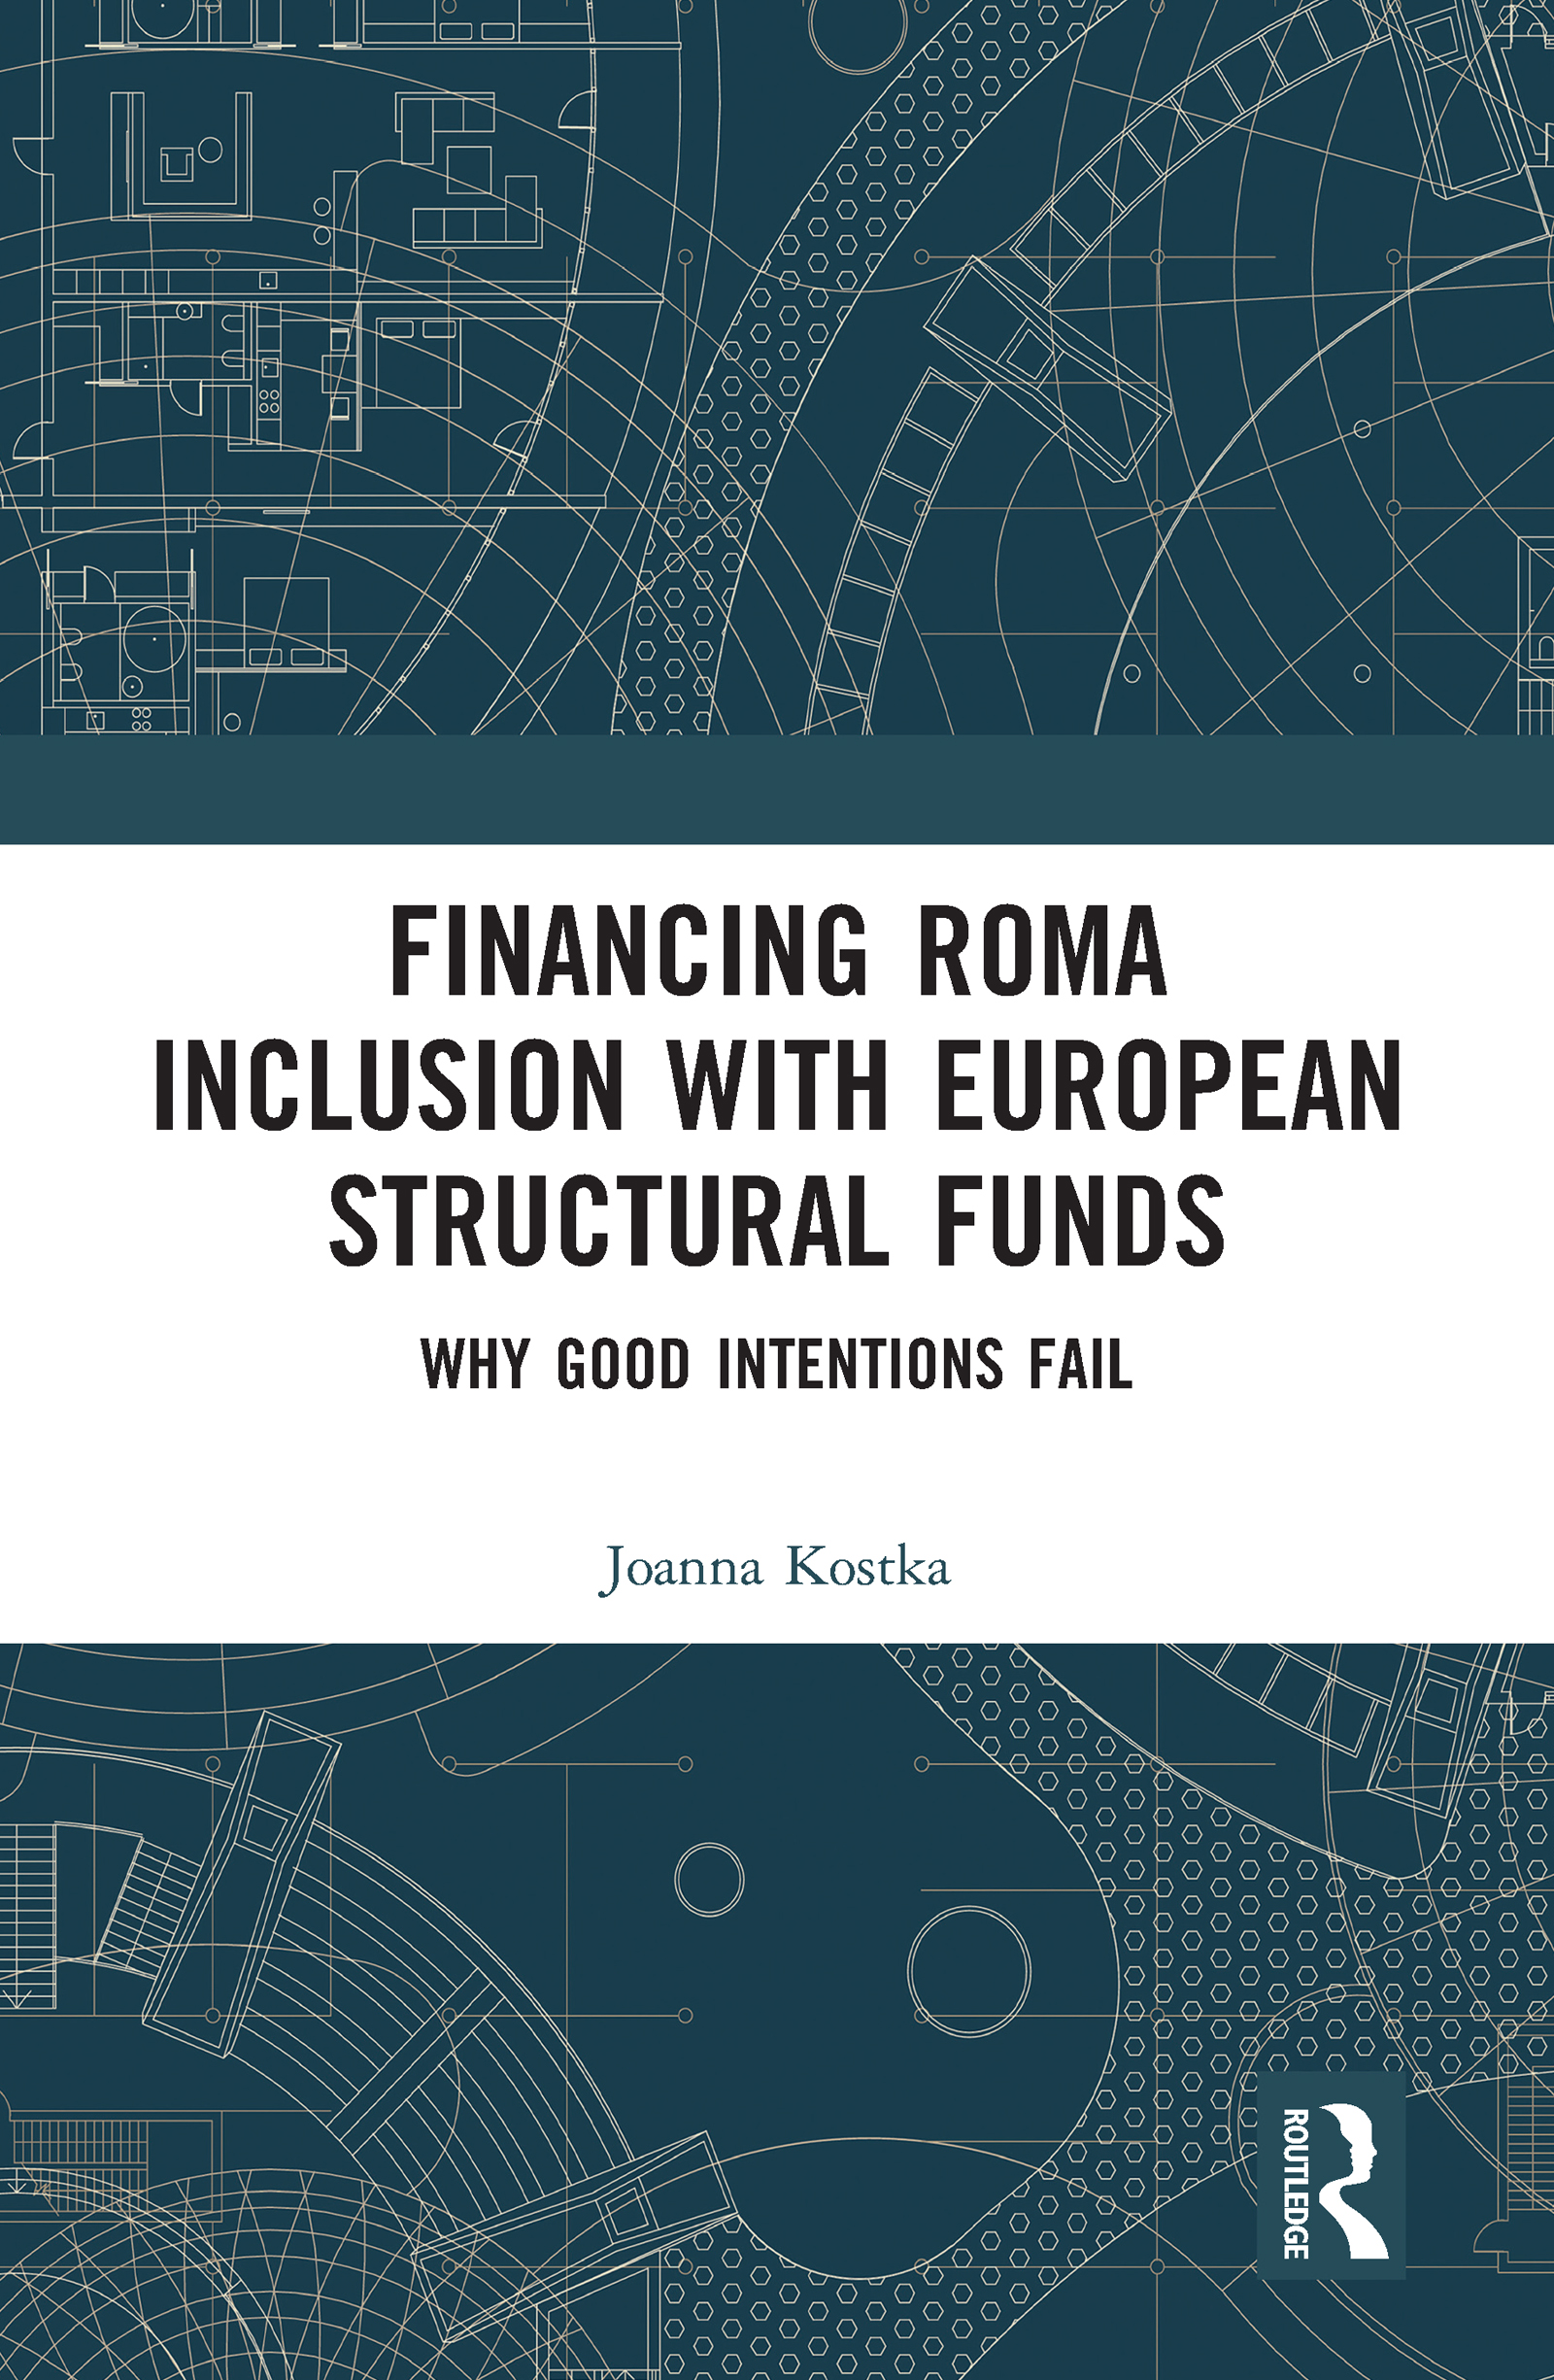 Financing Roma Inclusion with European Structural Funds